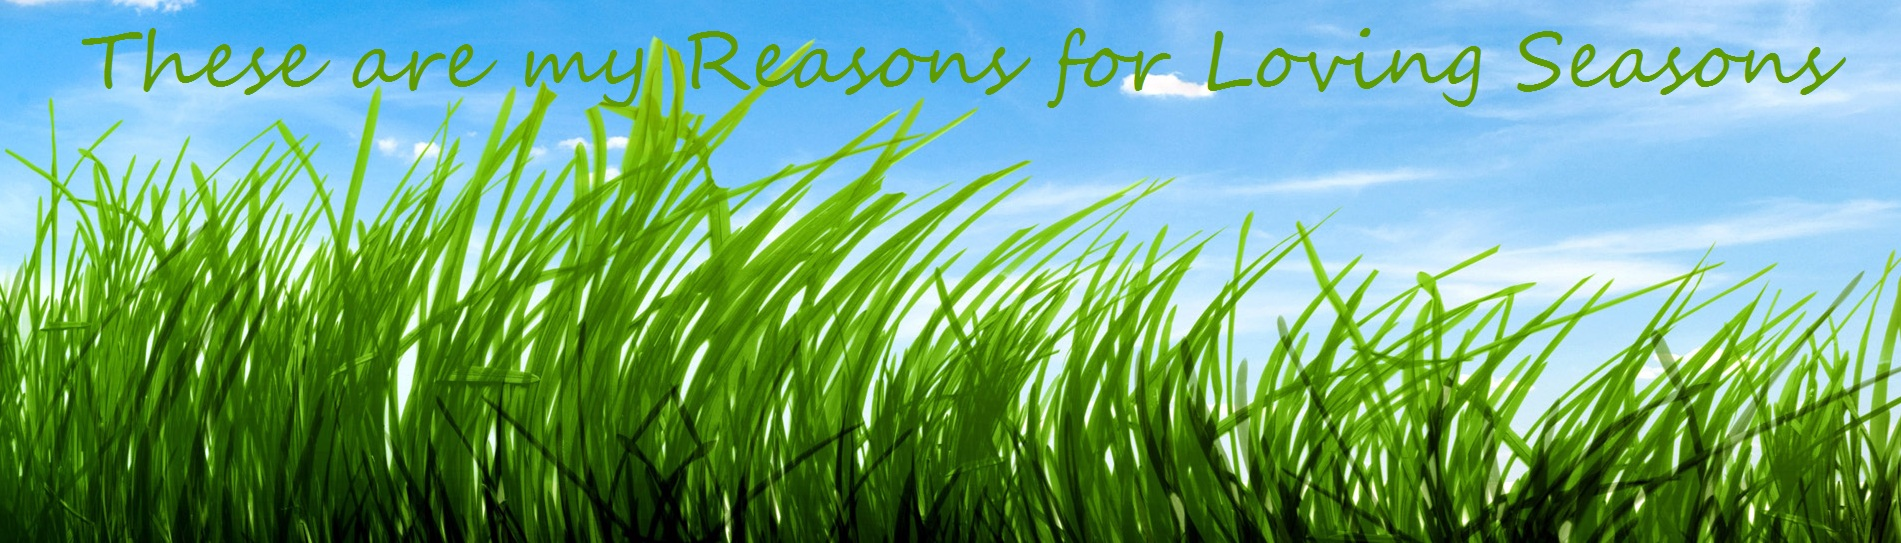 Reasons Four Loving Seasons